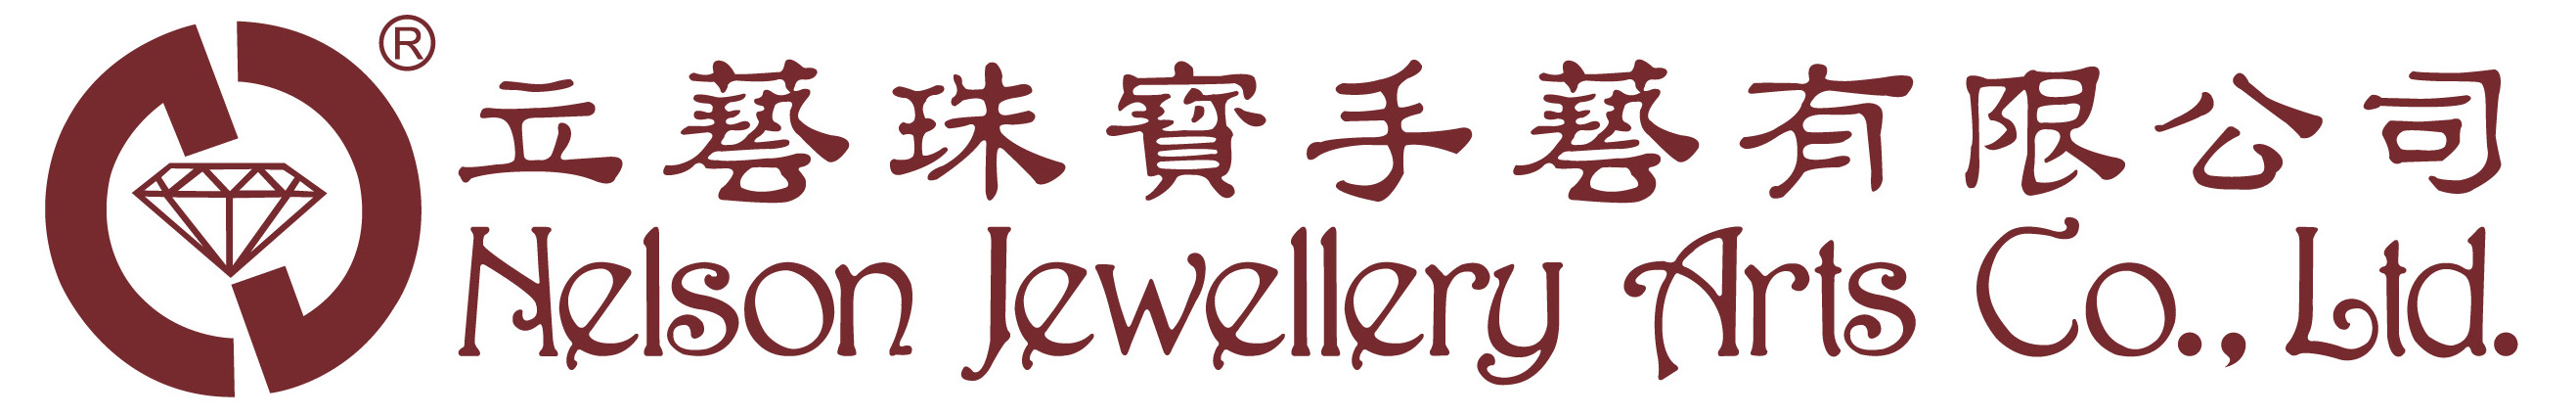 Nelson Jewelery - the leading socially responsible manufacturer of diamond and gemstone jewelry.  Offering a vast collection of exquisite designs and meticulous craftsmanship of fine jewelry.